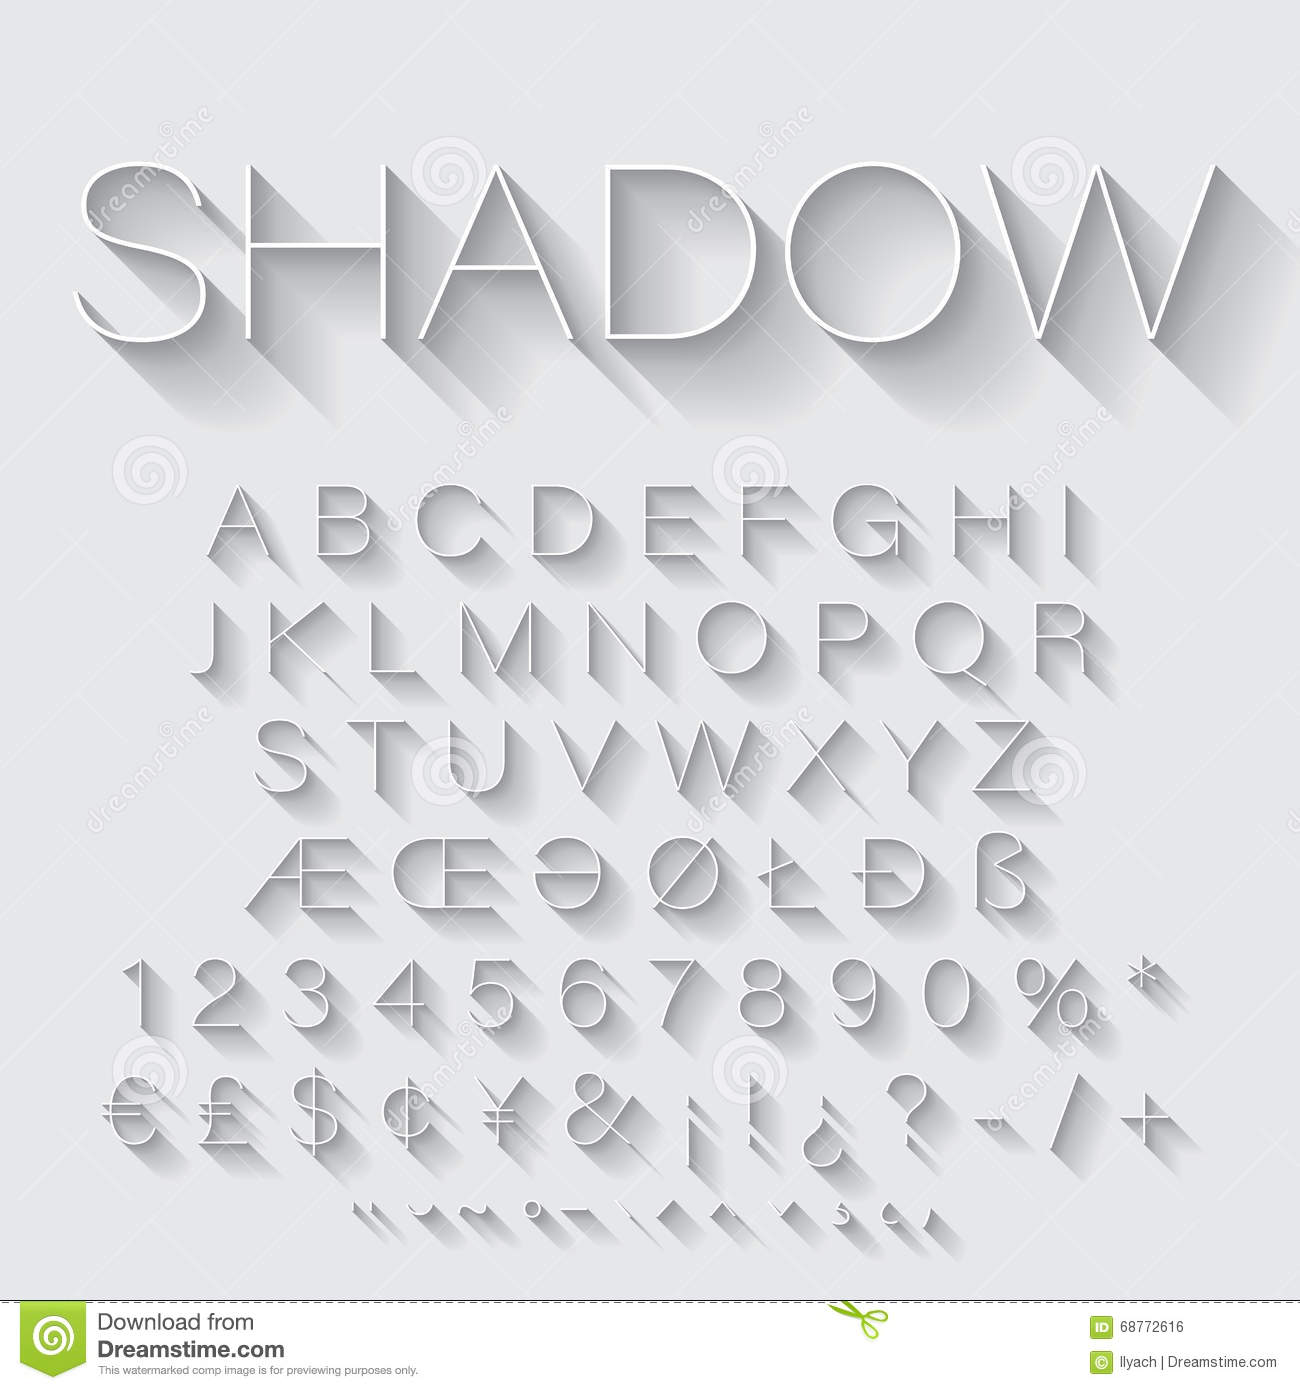 how to add shadows to letters